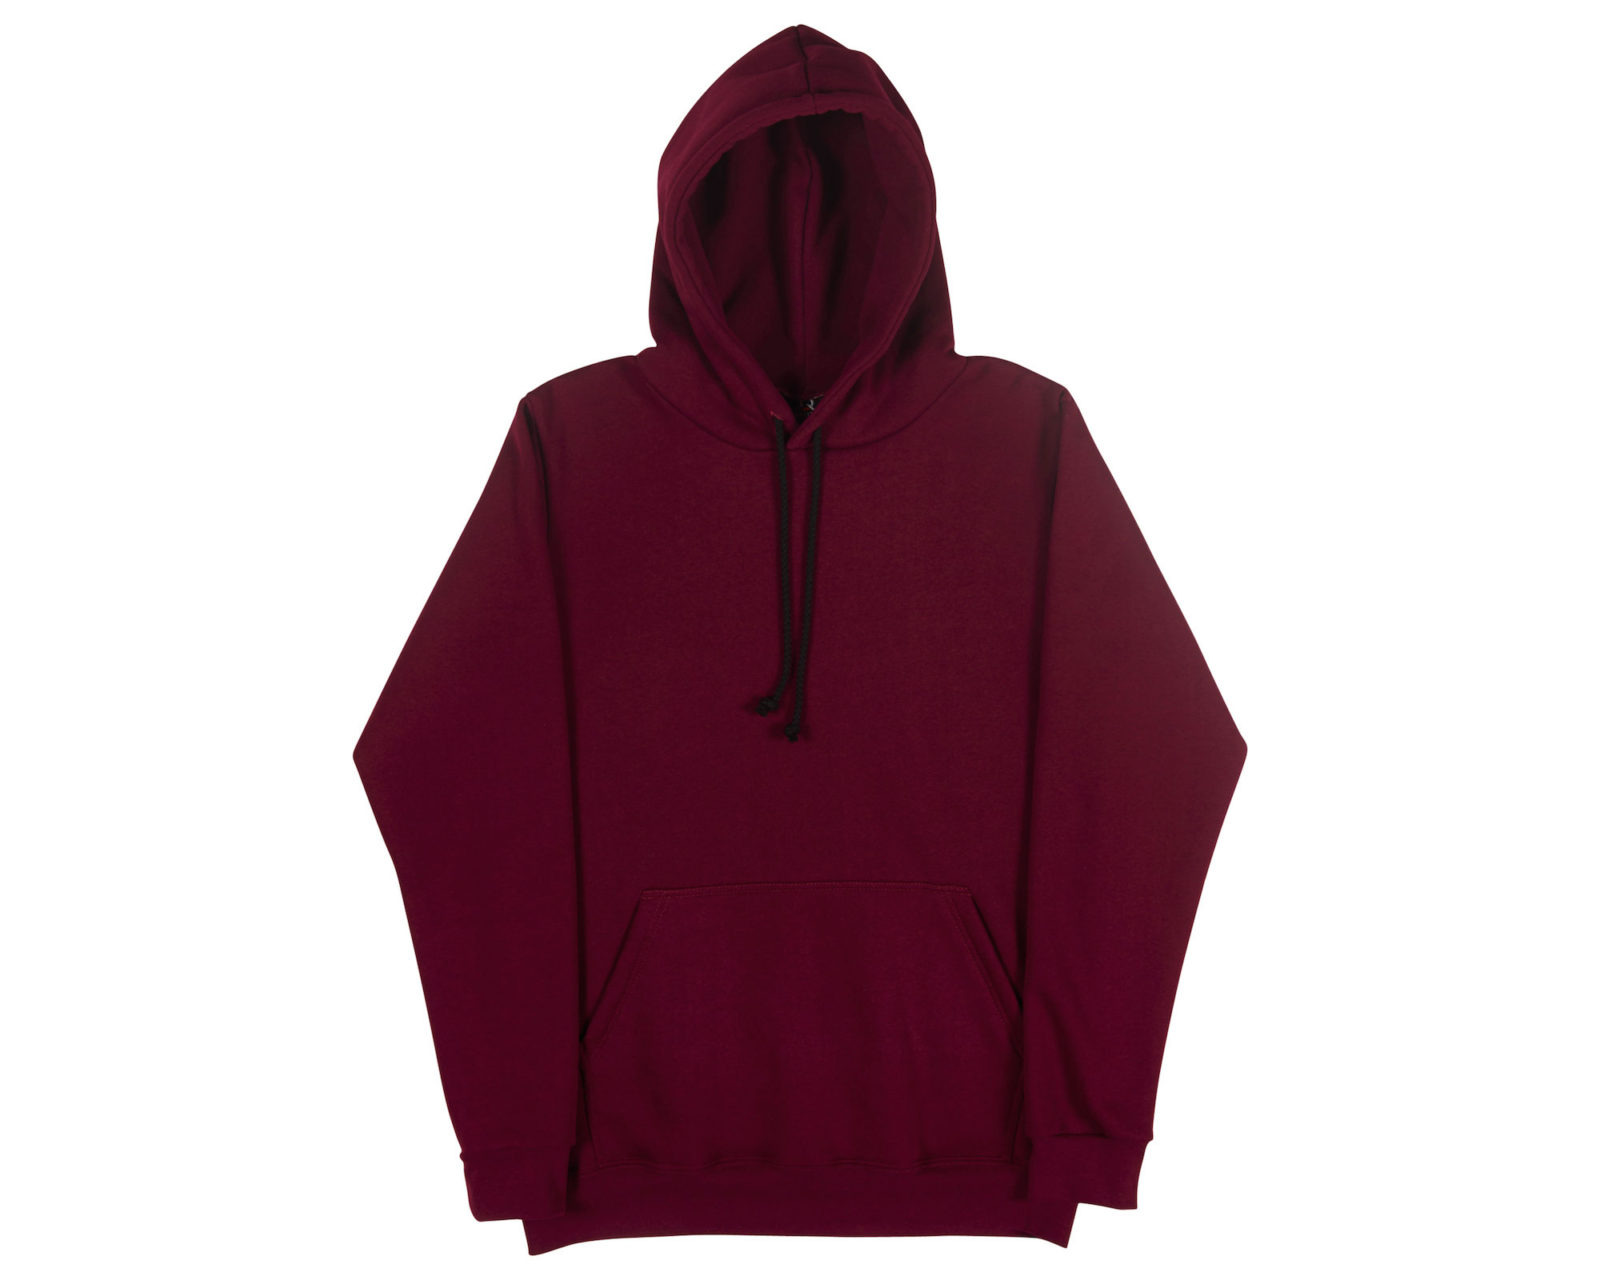 Qualitops Mens Hoodie Polycotton Australian made clothing